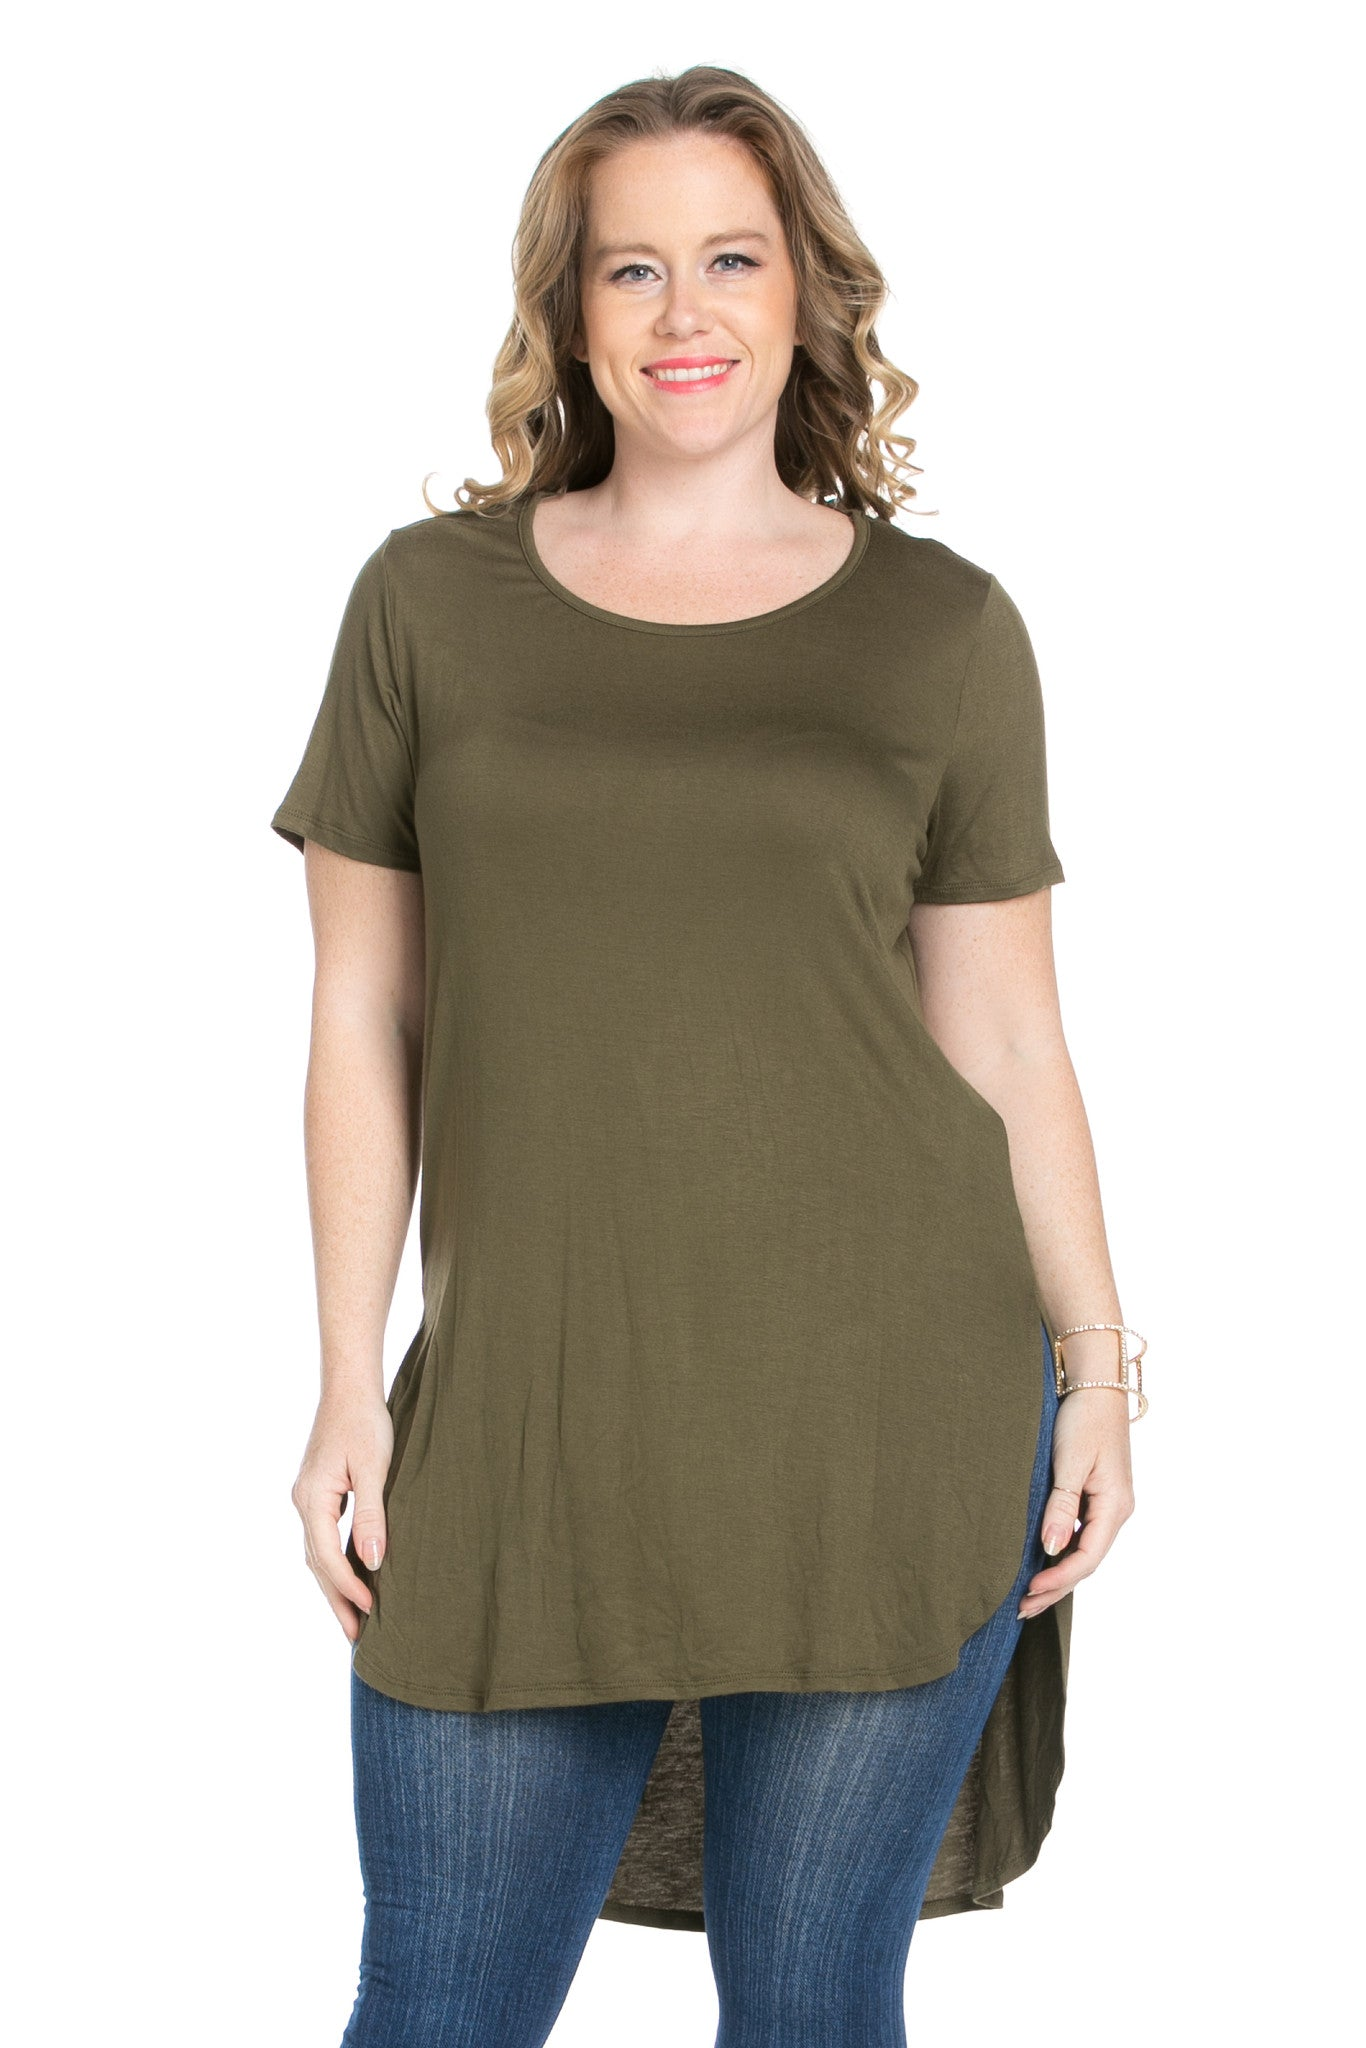 Olive Plus Size High-low Scoop Neck Shirt - Blouses - My Yuccie - 7